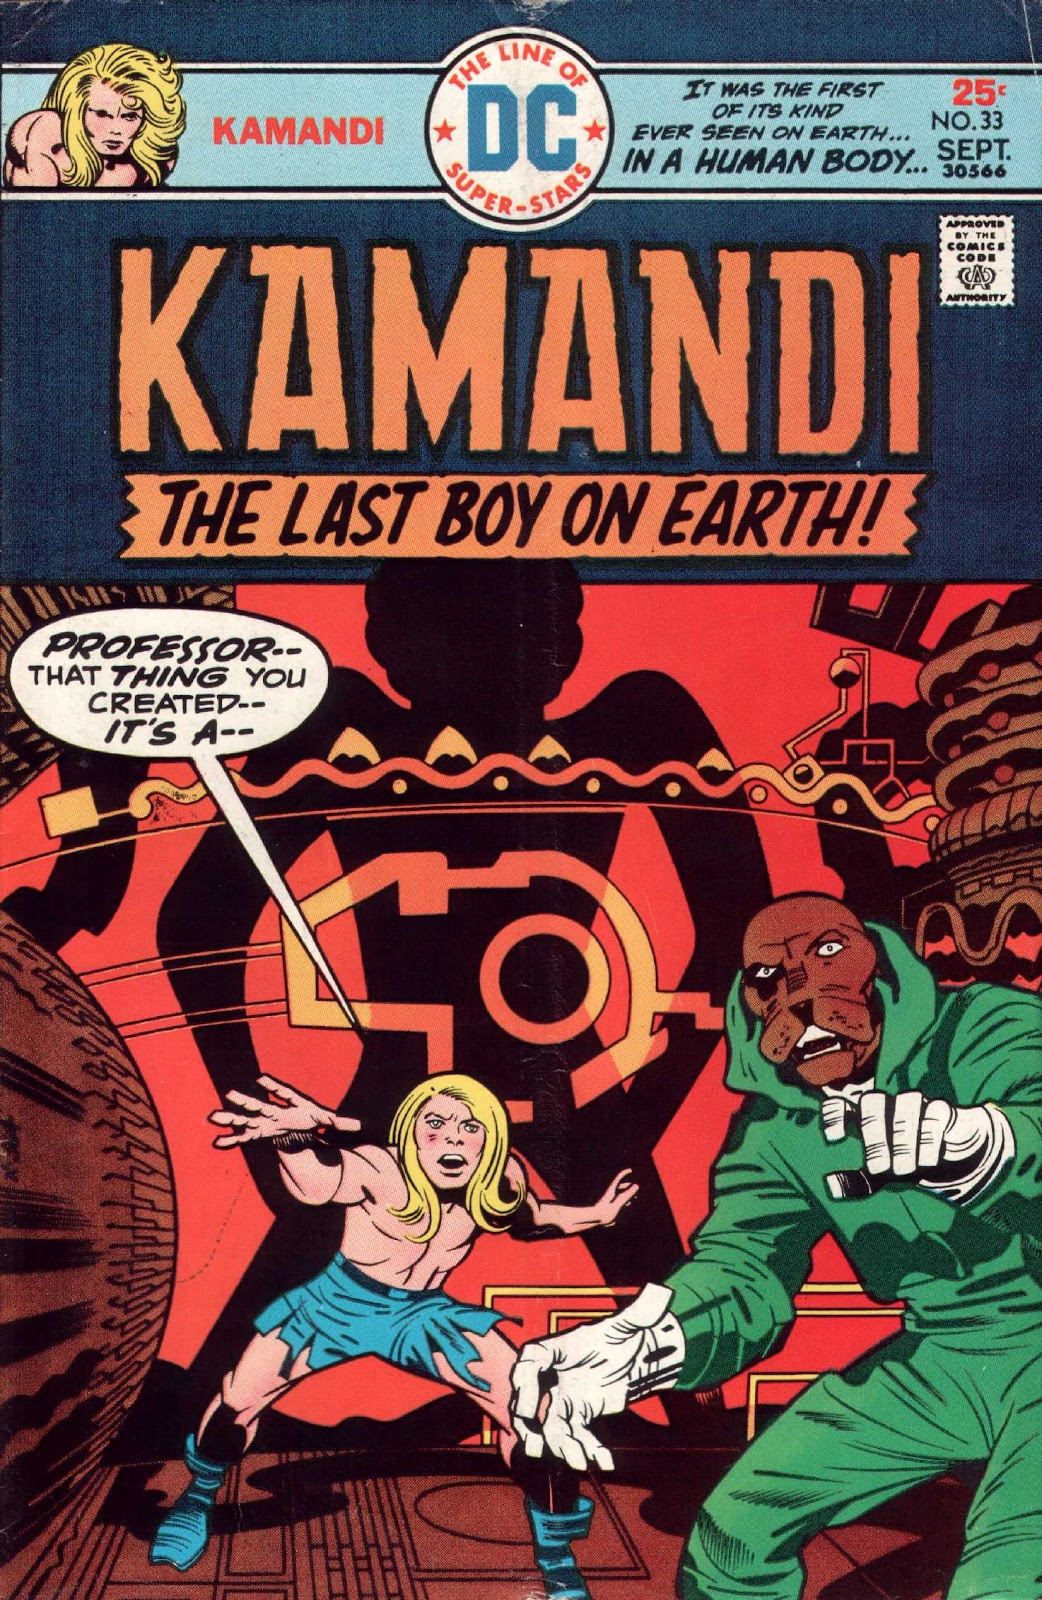 Kamandi, The Last Boy On Earth issue 33 - Page 1